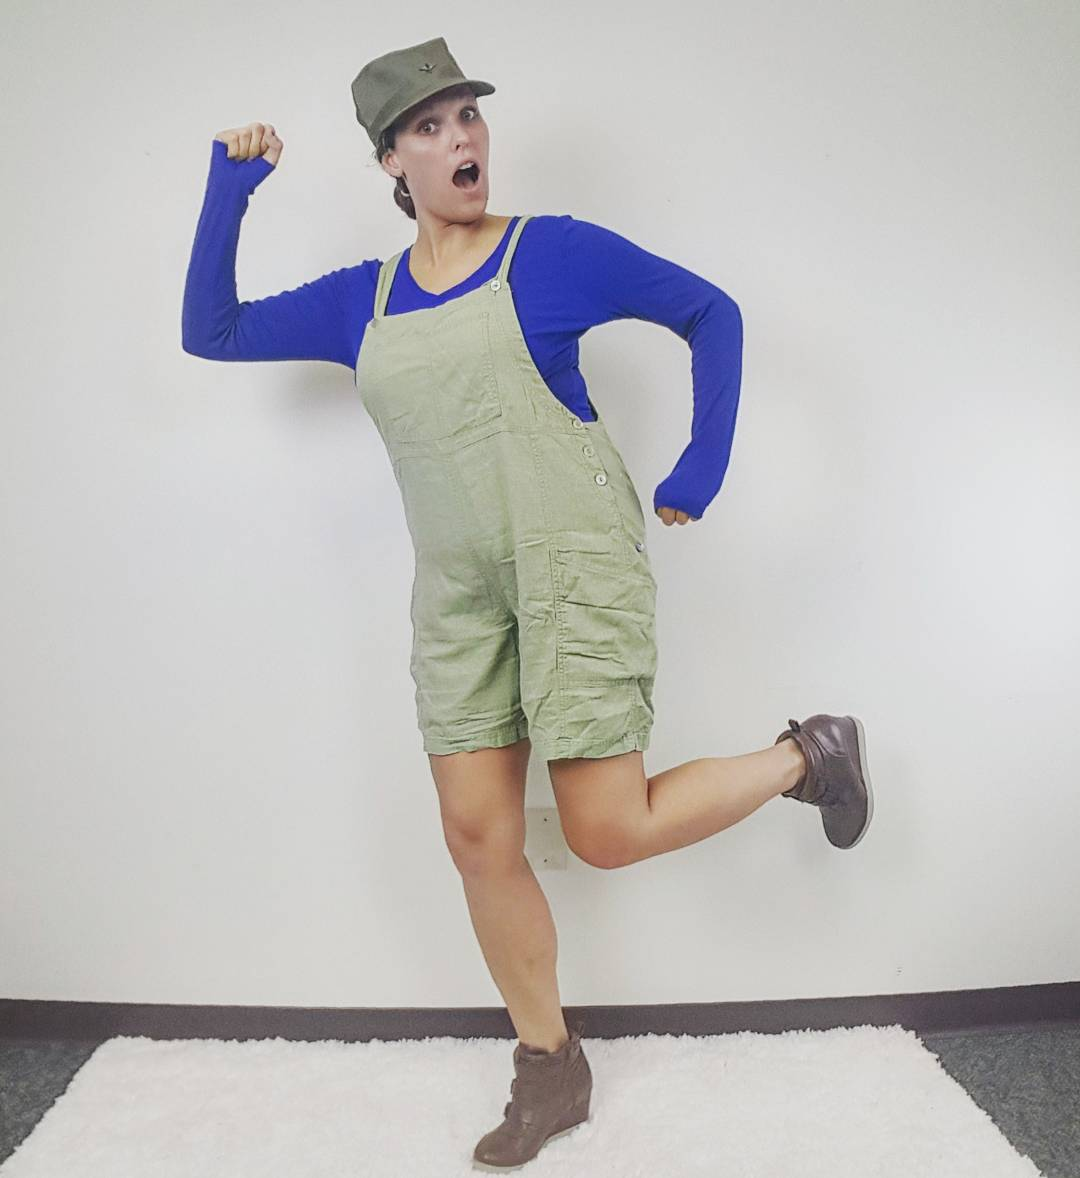 Thrift Store Cosplay Day 13 Luigi Super Mario Brothers Nintendo fashion blog post